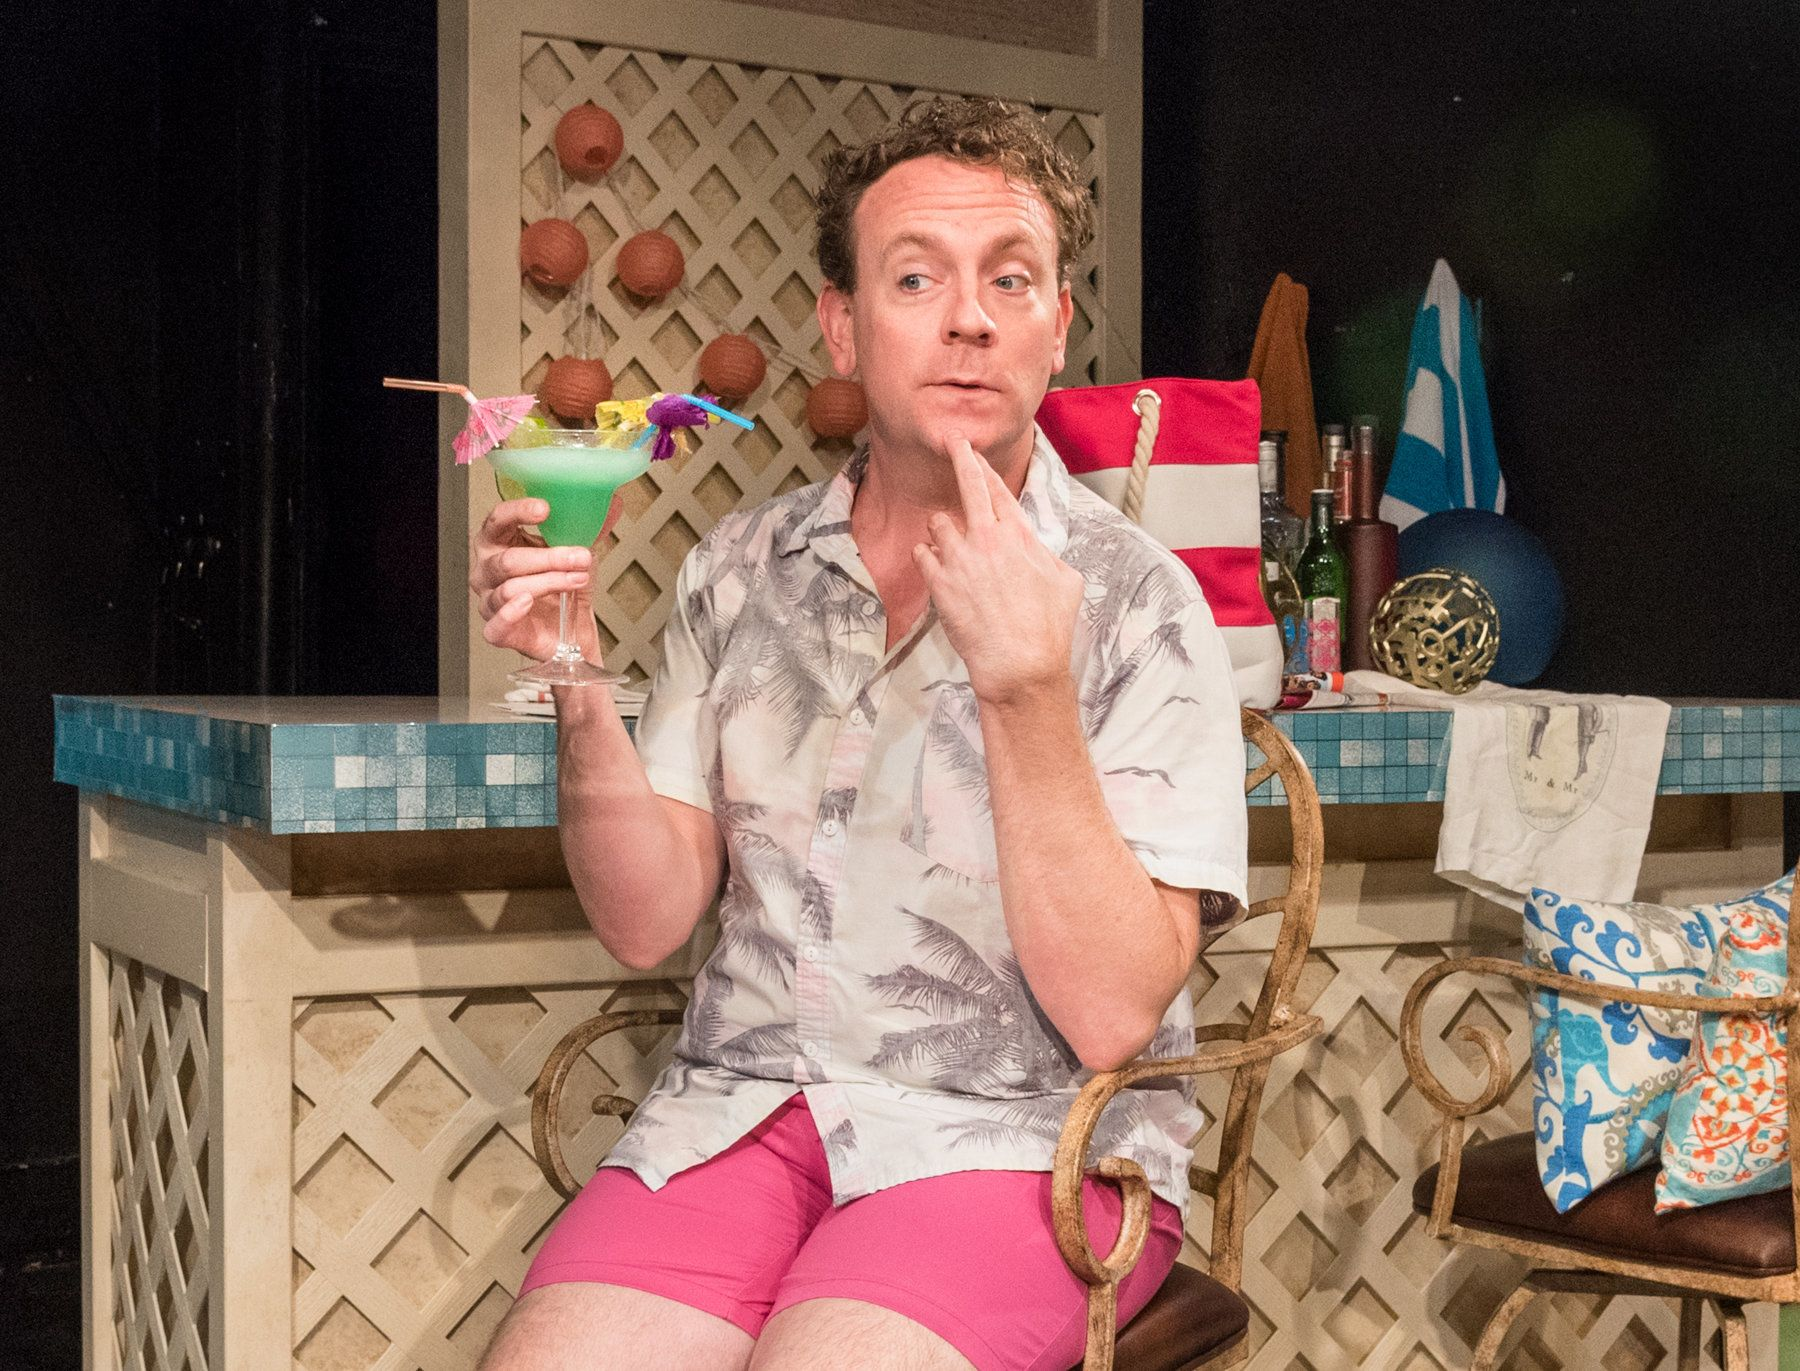 Drew Droege stars in the one-man show